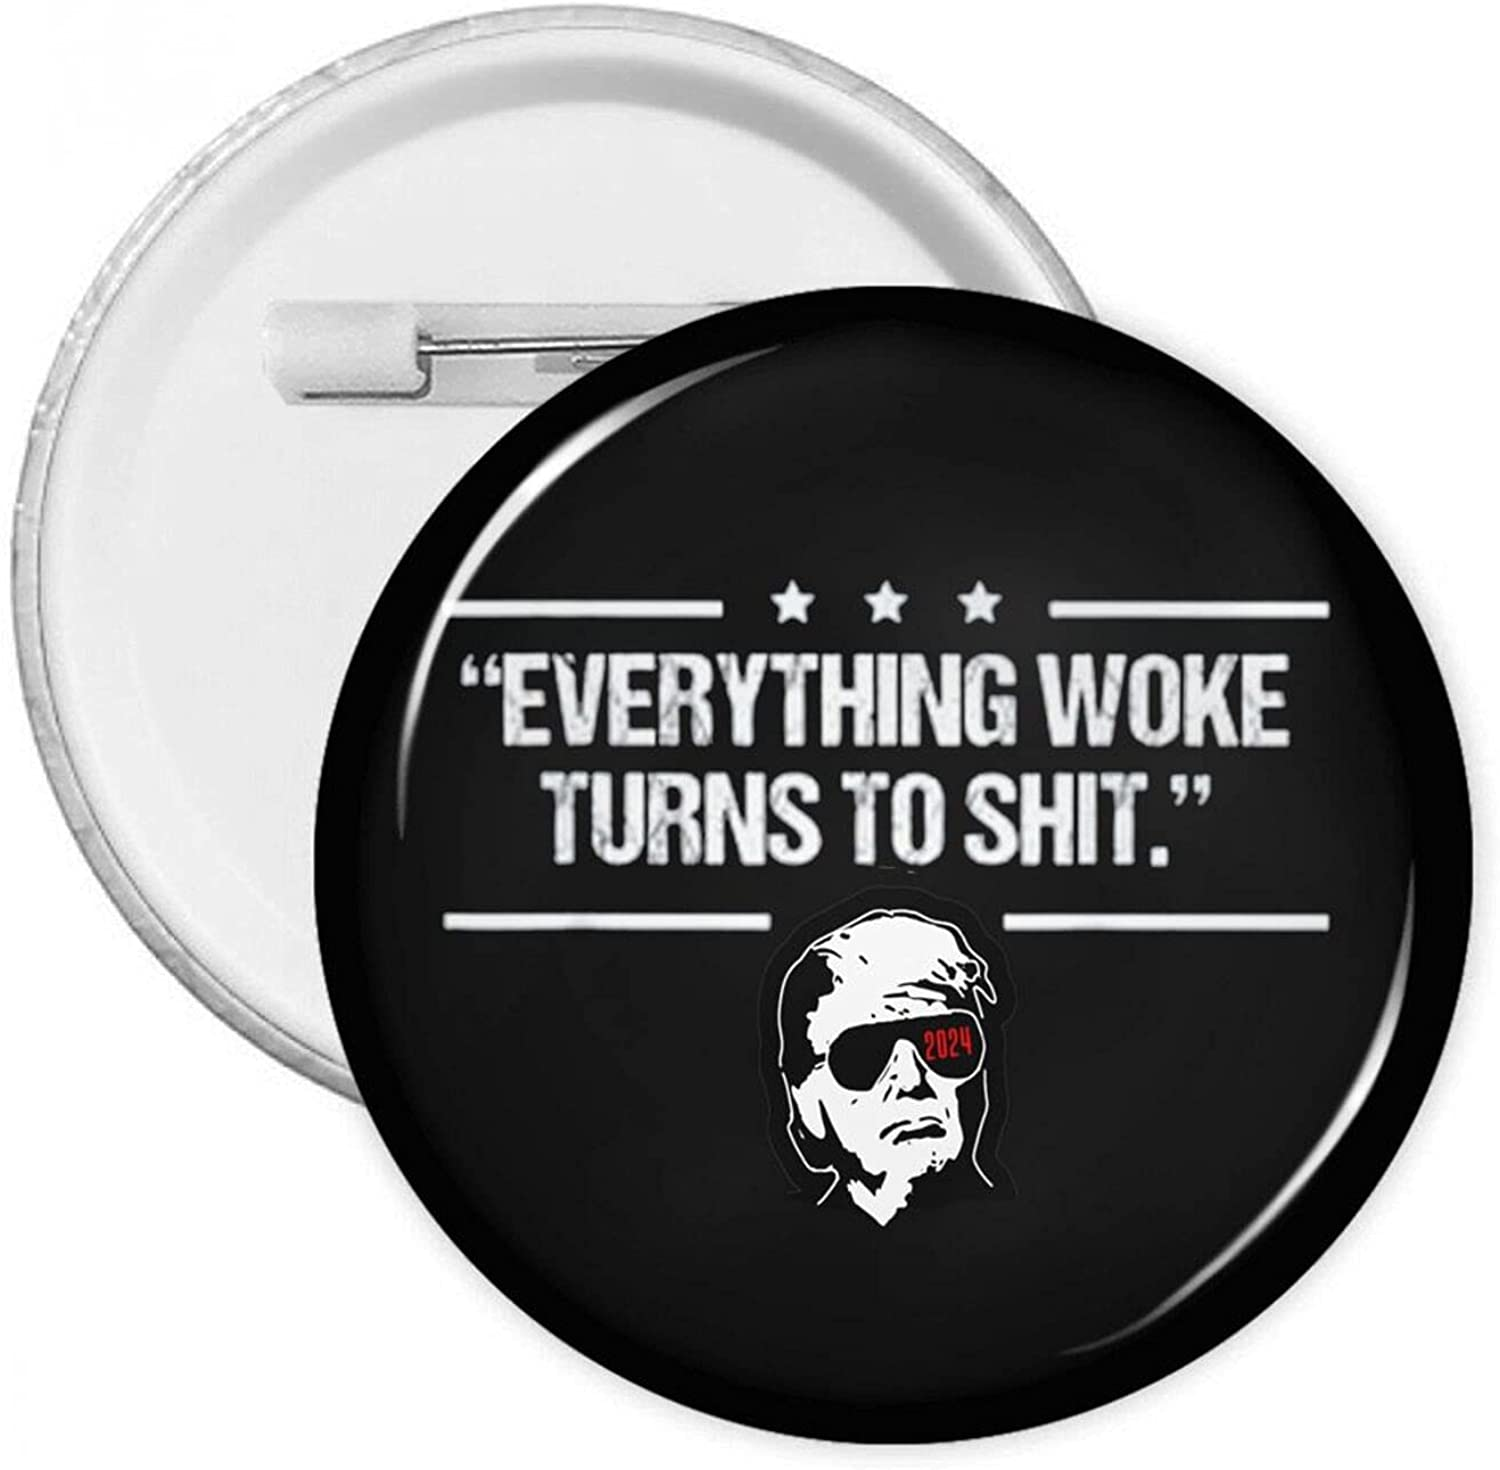 Funny Trump Everything Woke New popularity Turns To Badges Round Wi Shit Button Choice